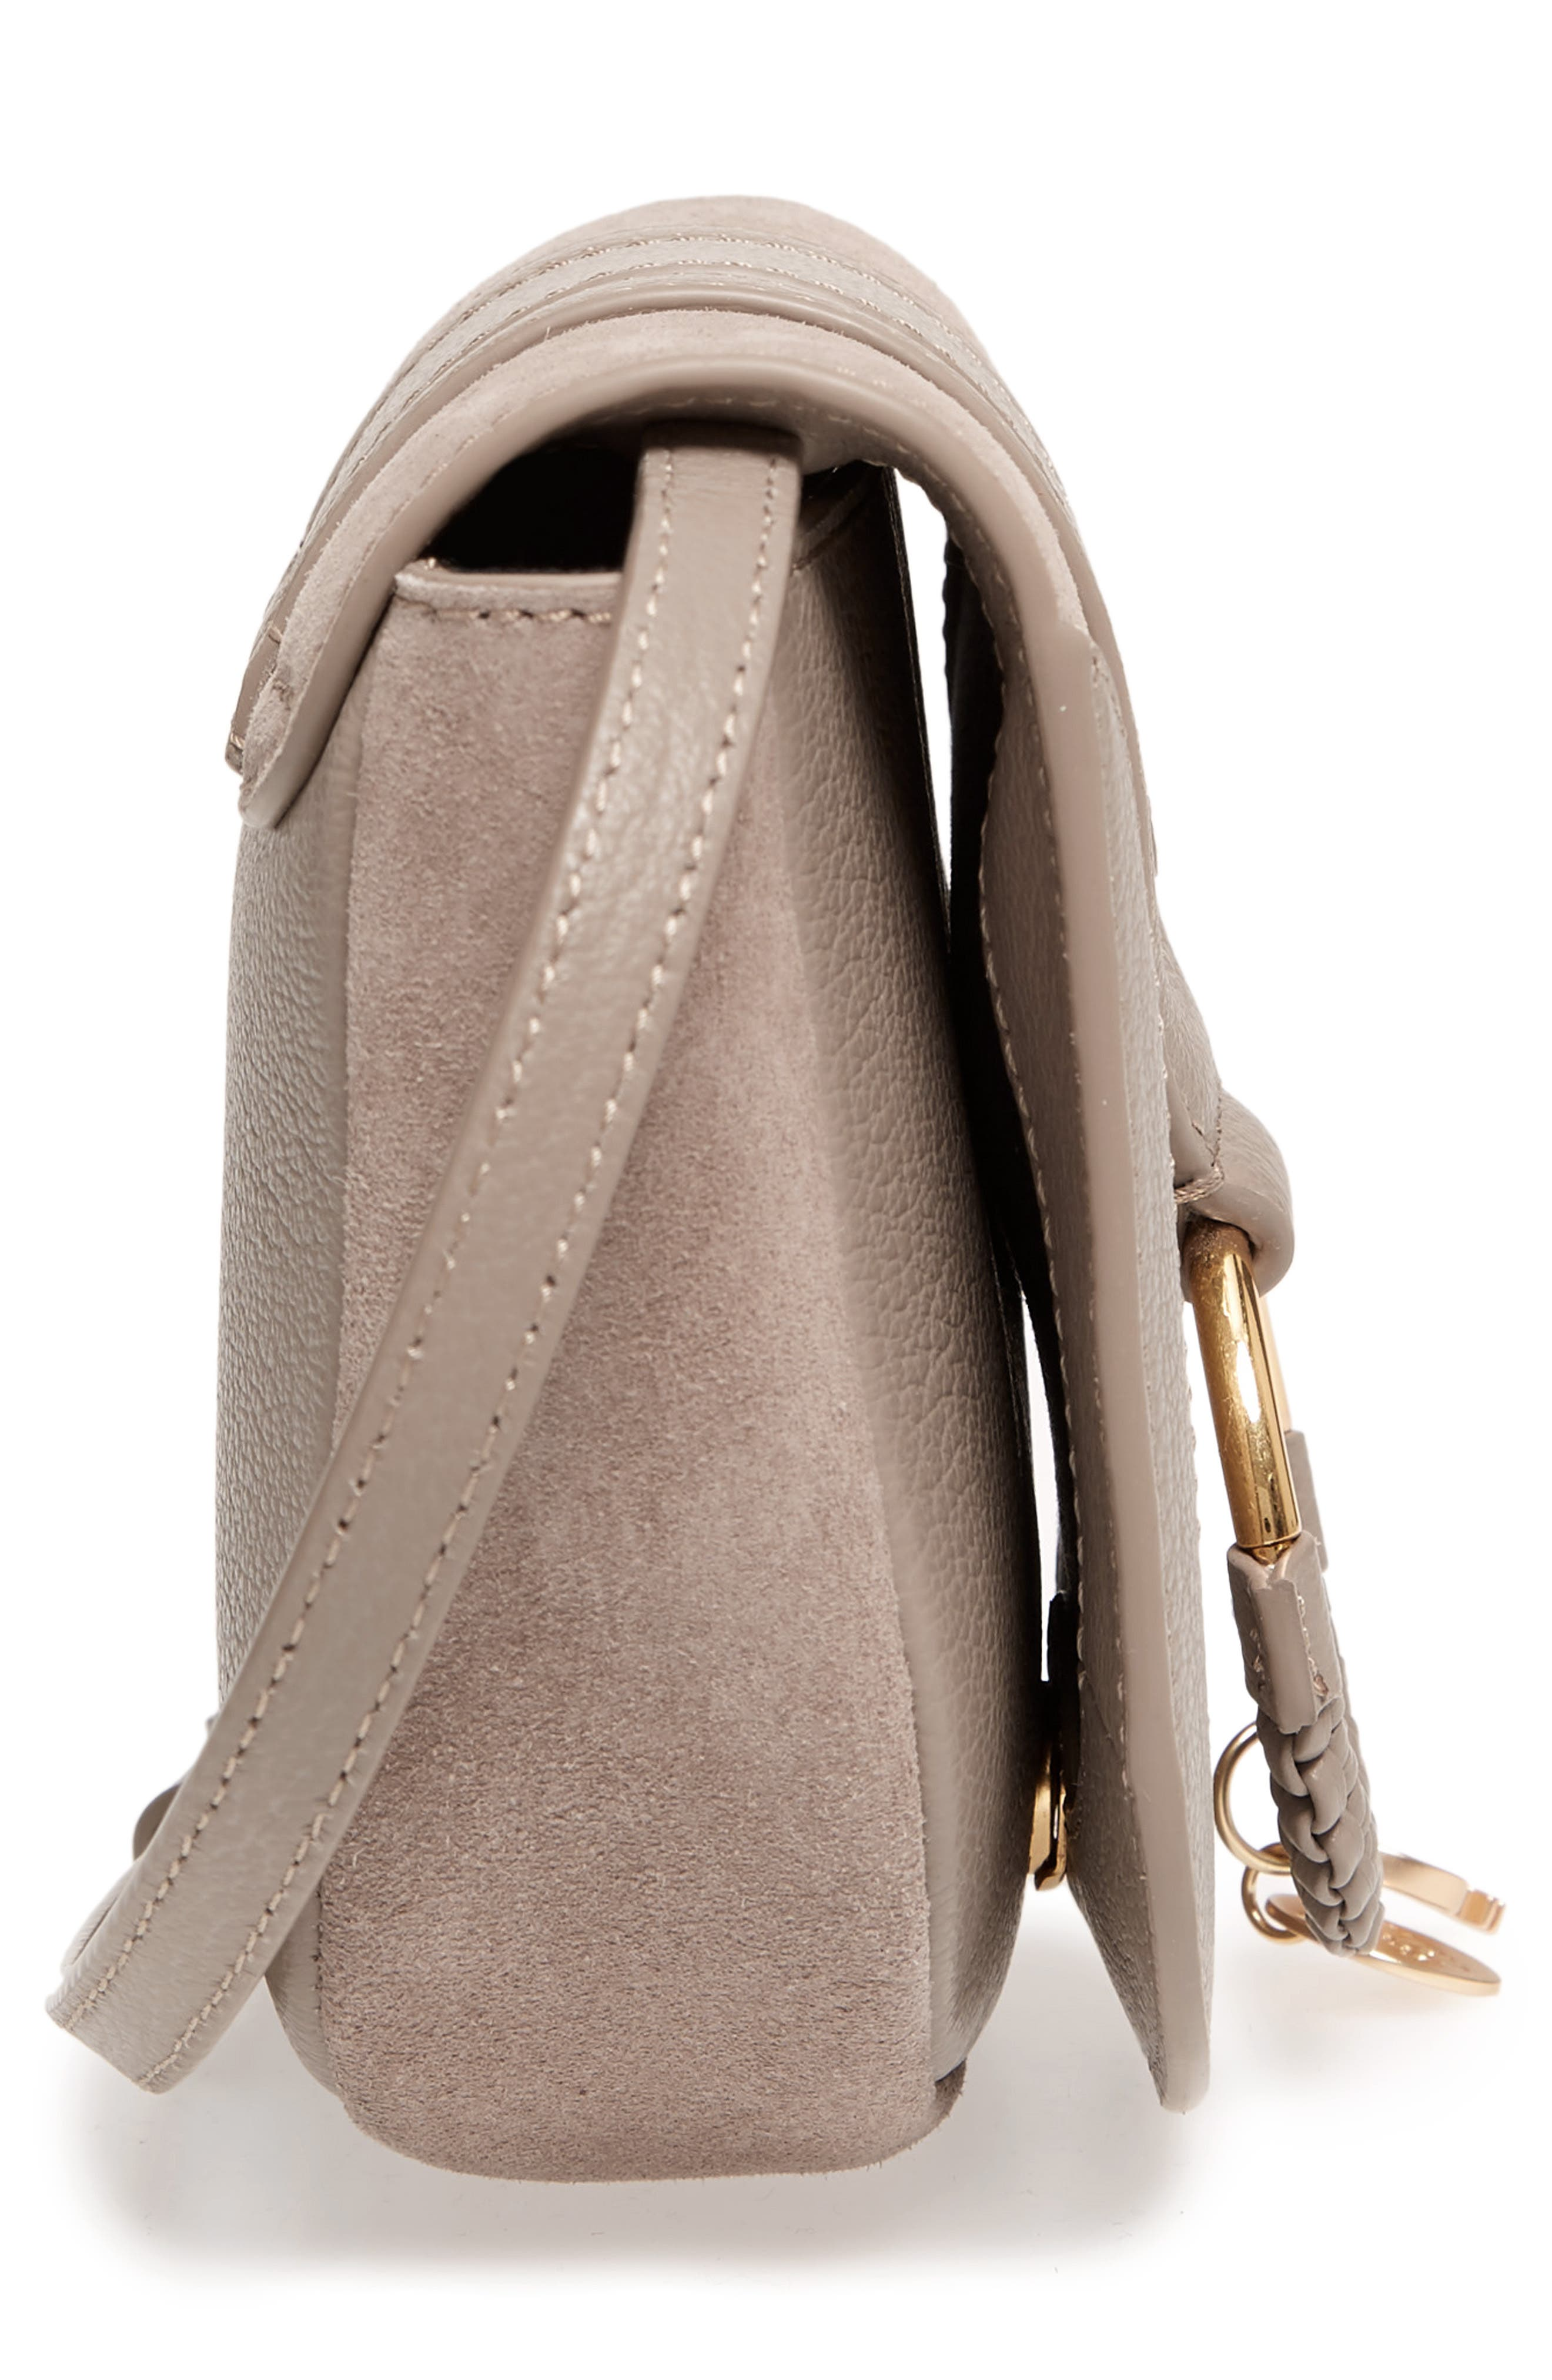 Mini Hana Leather & Suede Crossbody Bag,                             Alternate thumbnail 5, color,                             260